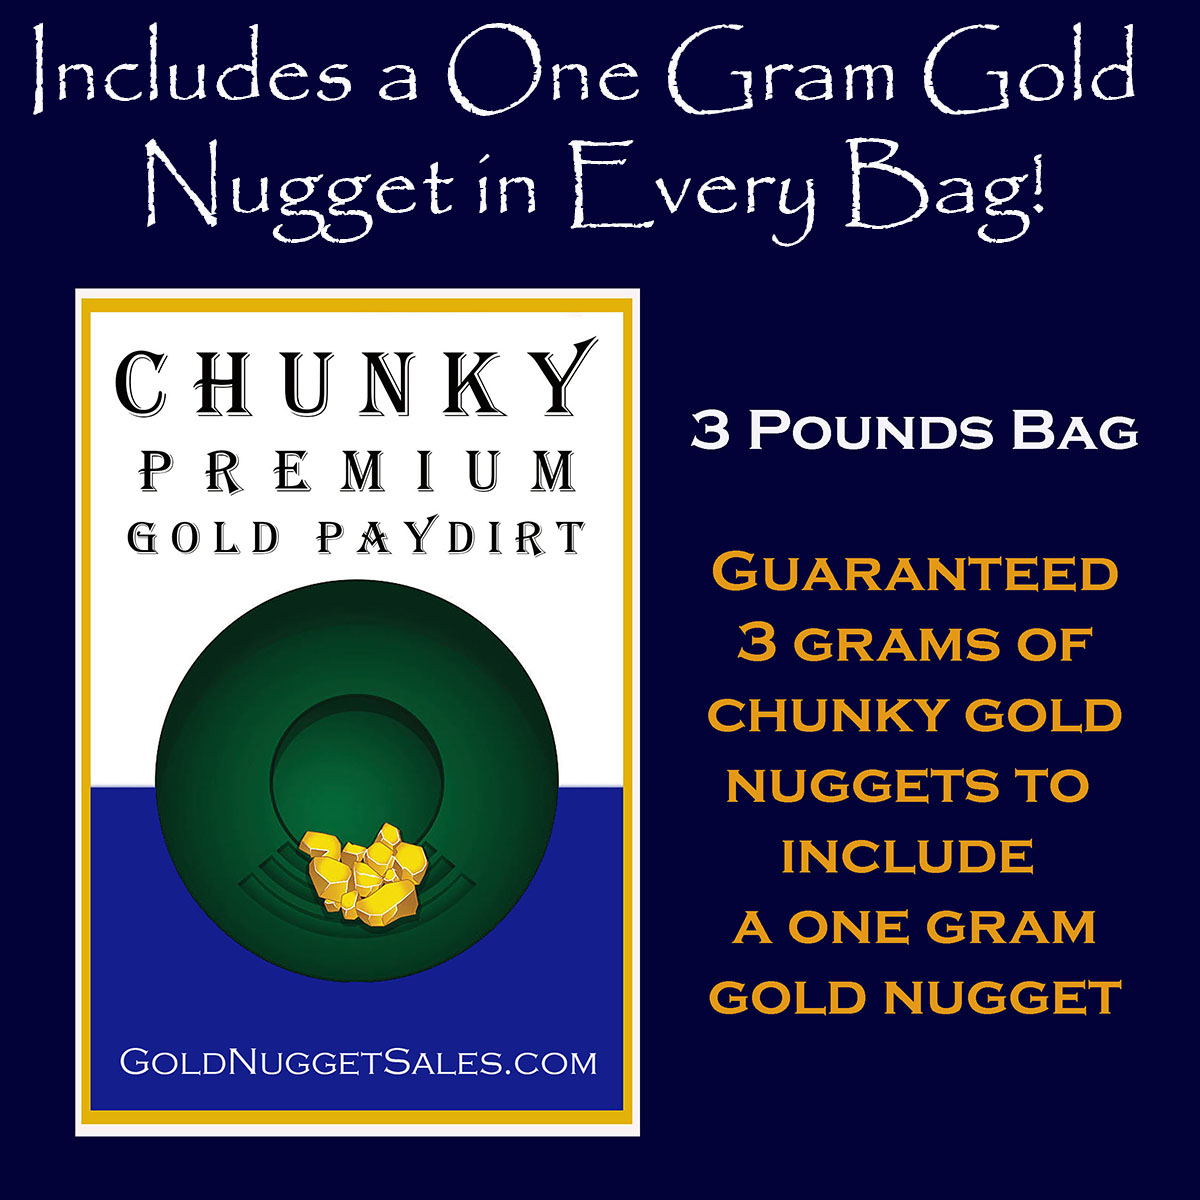 Chunky Gold -3 Grams Chunky Gold to Include a 1 Gram Gold Nugget